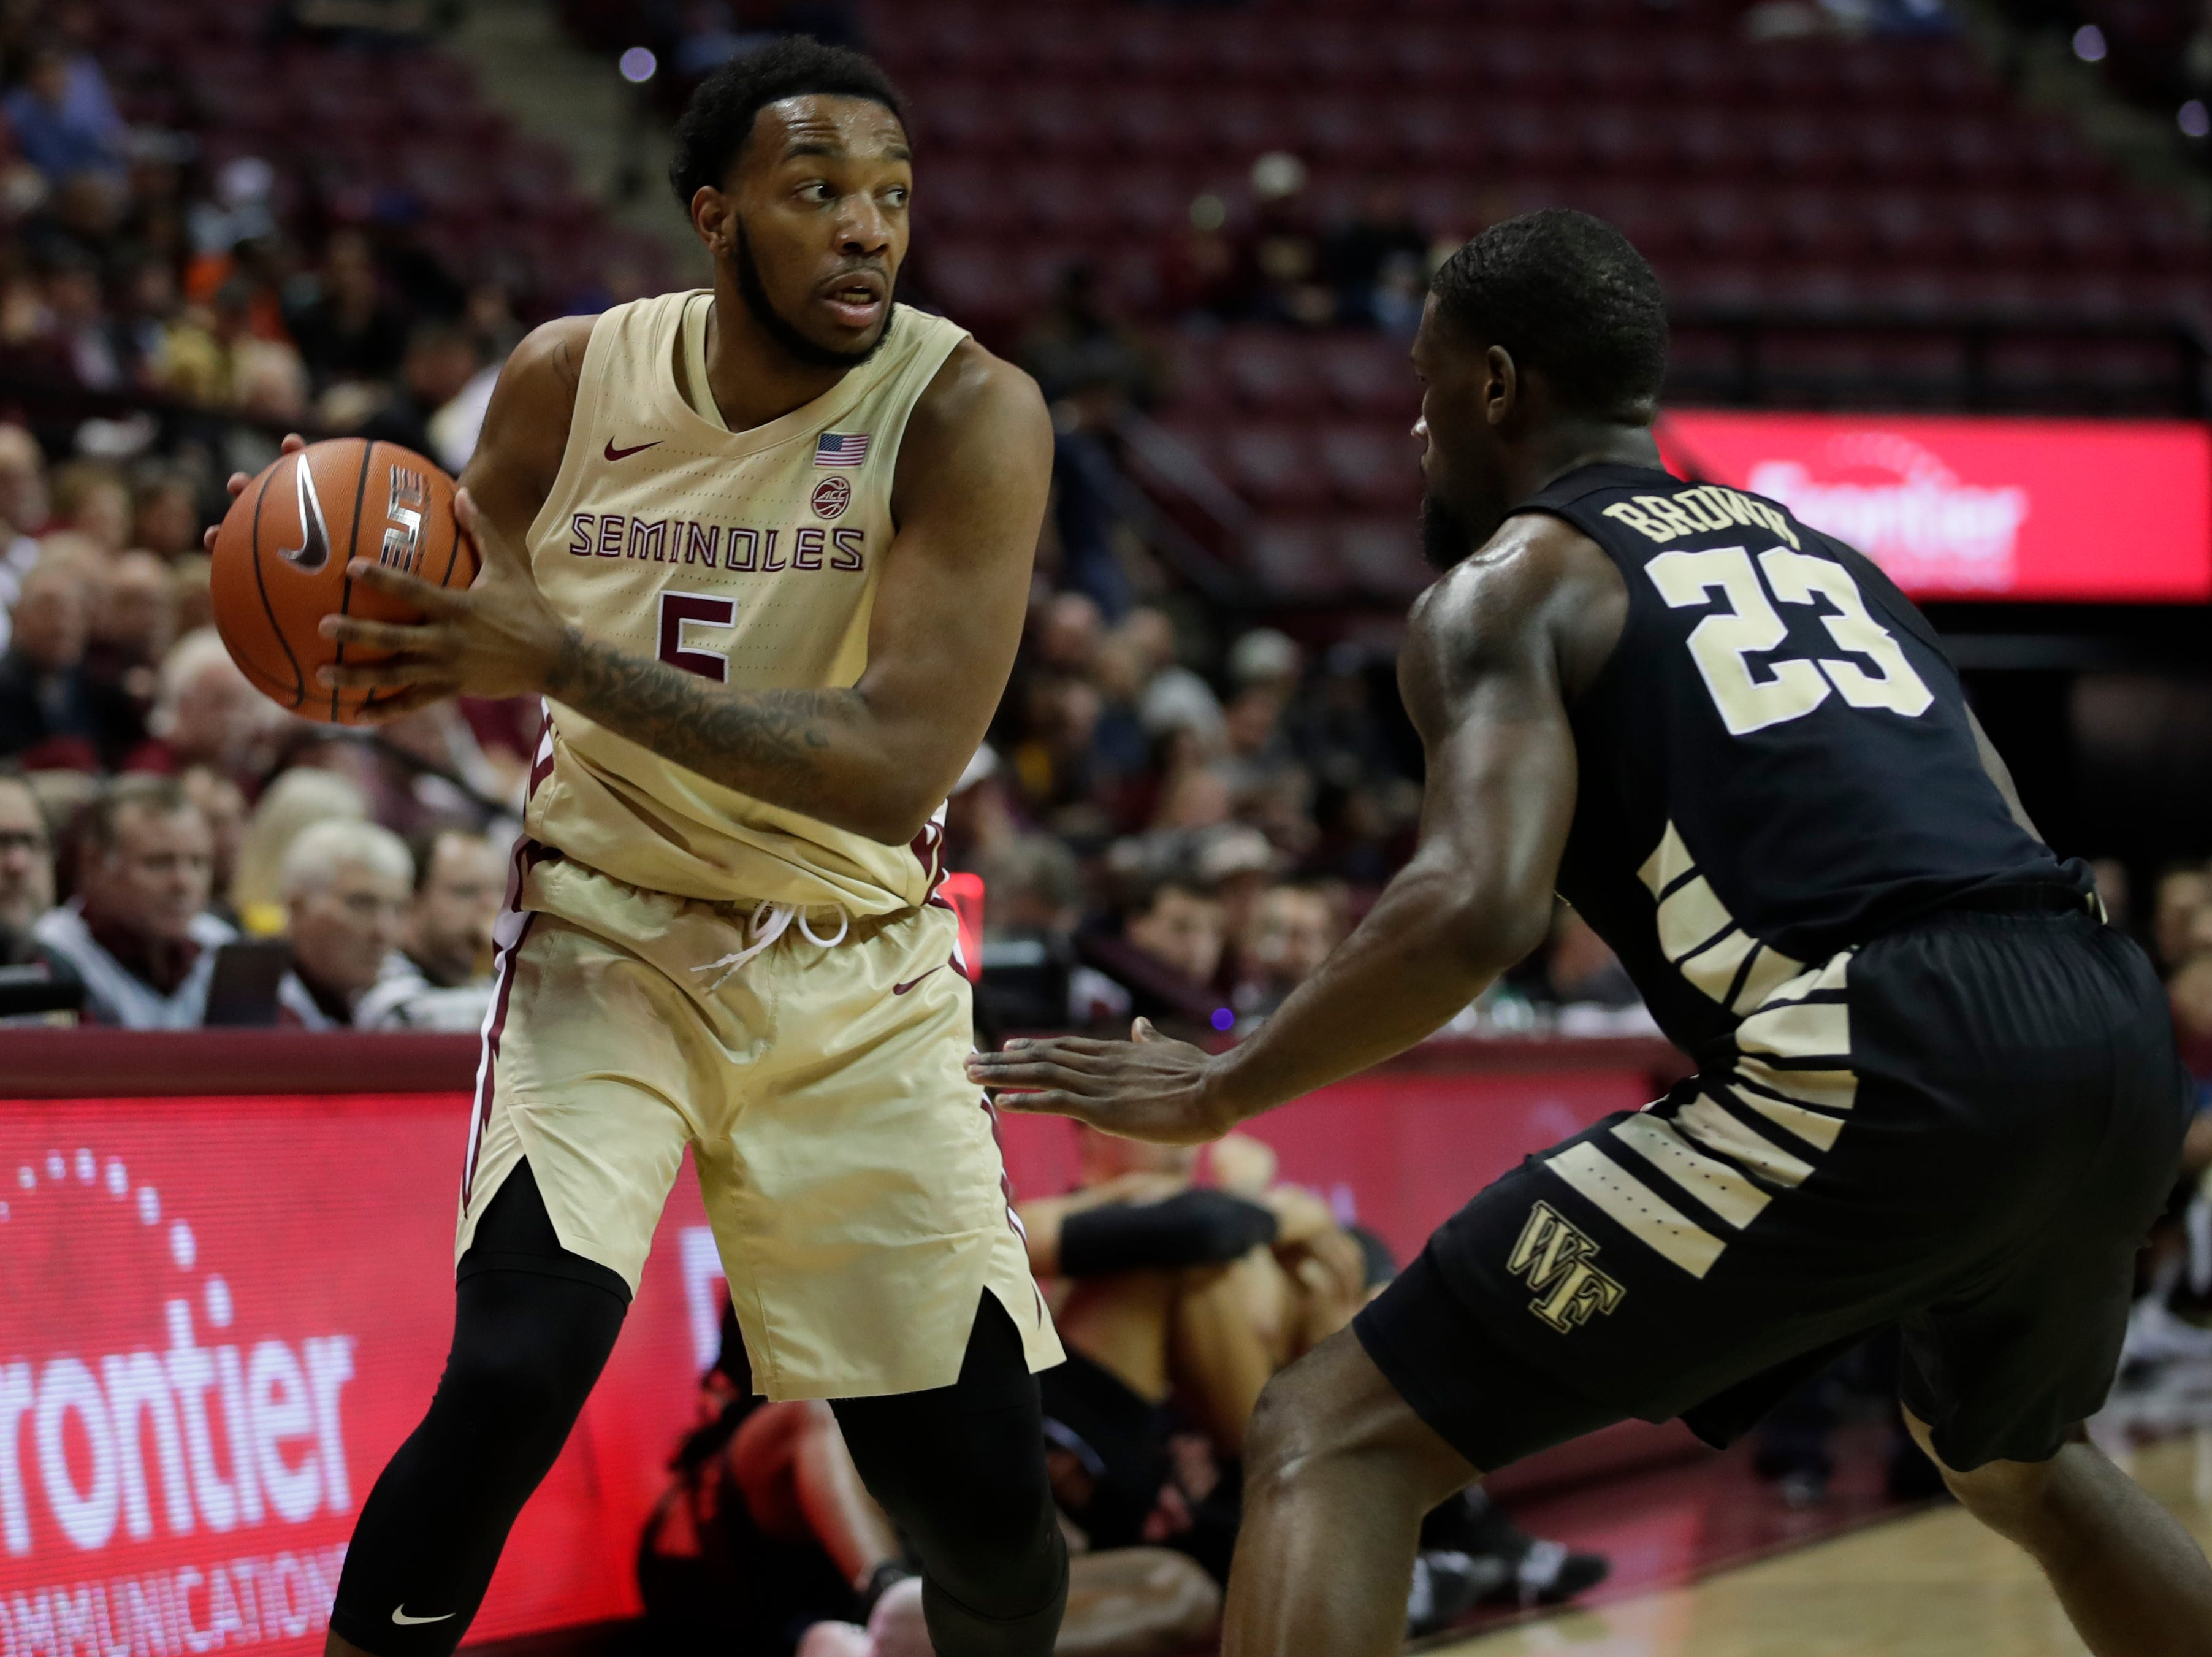 Florida State Seminoles guard PJ Savoy (5) looks for an opening during a game between FSU and Wake Forest at the Donald L. Tucker Civic Center Wednesday, Feb. 13, 2019.